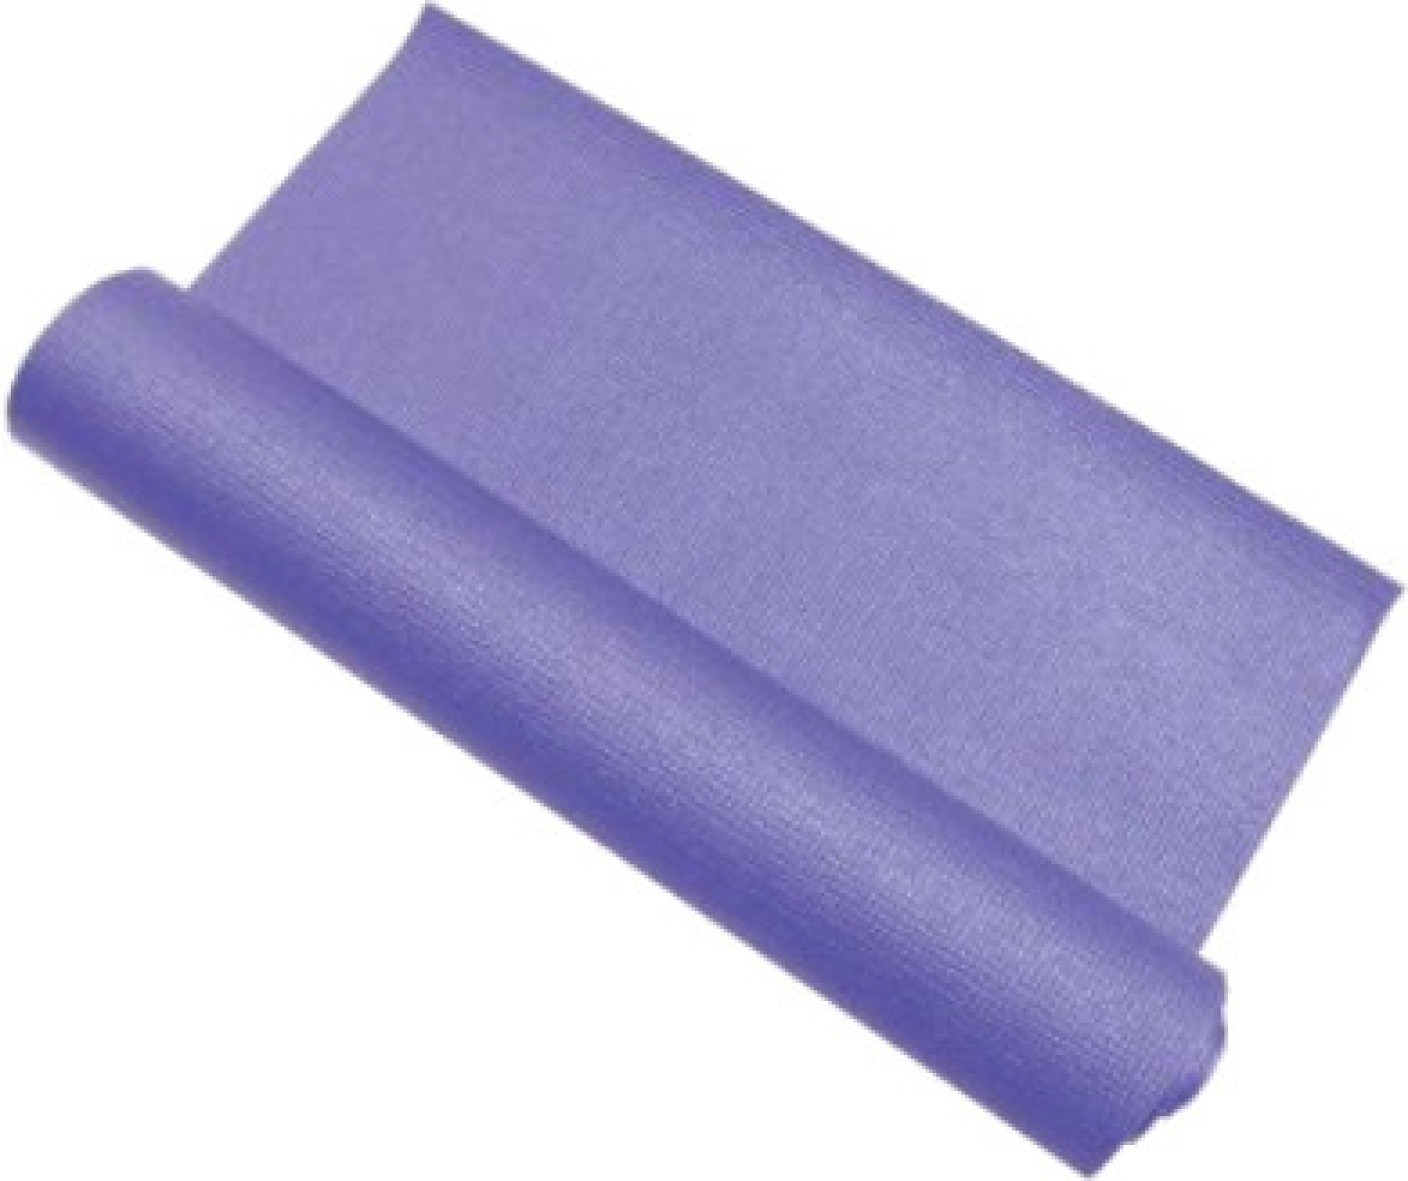 Cosco Yoga Mat Buy Cosco Yoga Mat Online At Best Prices